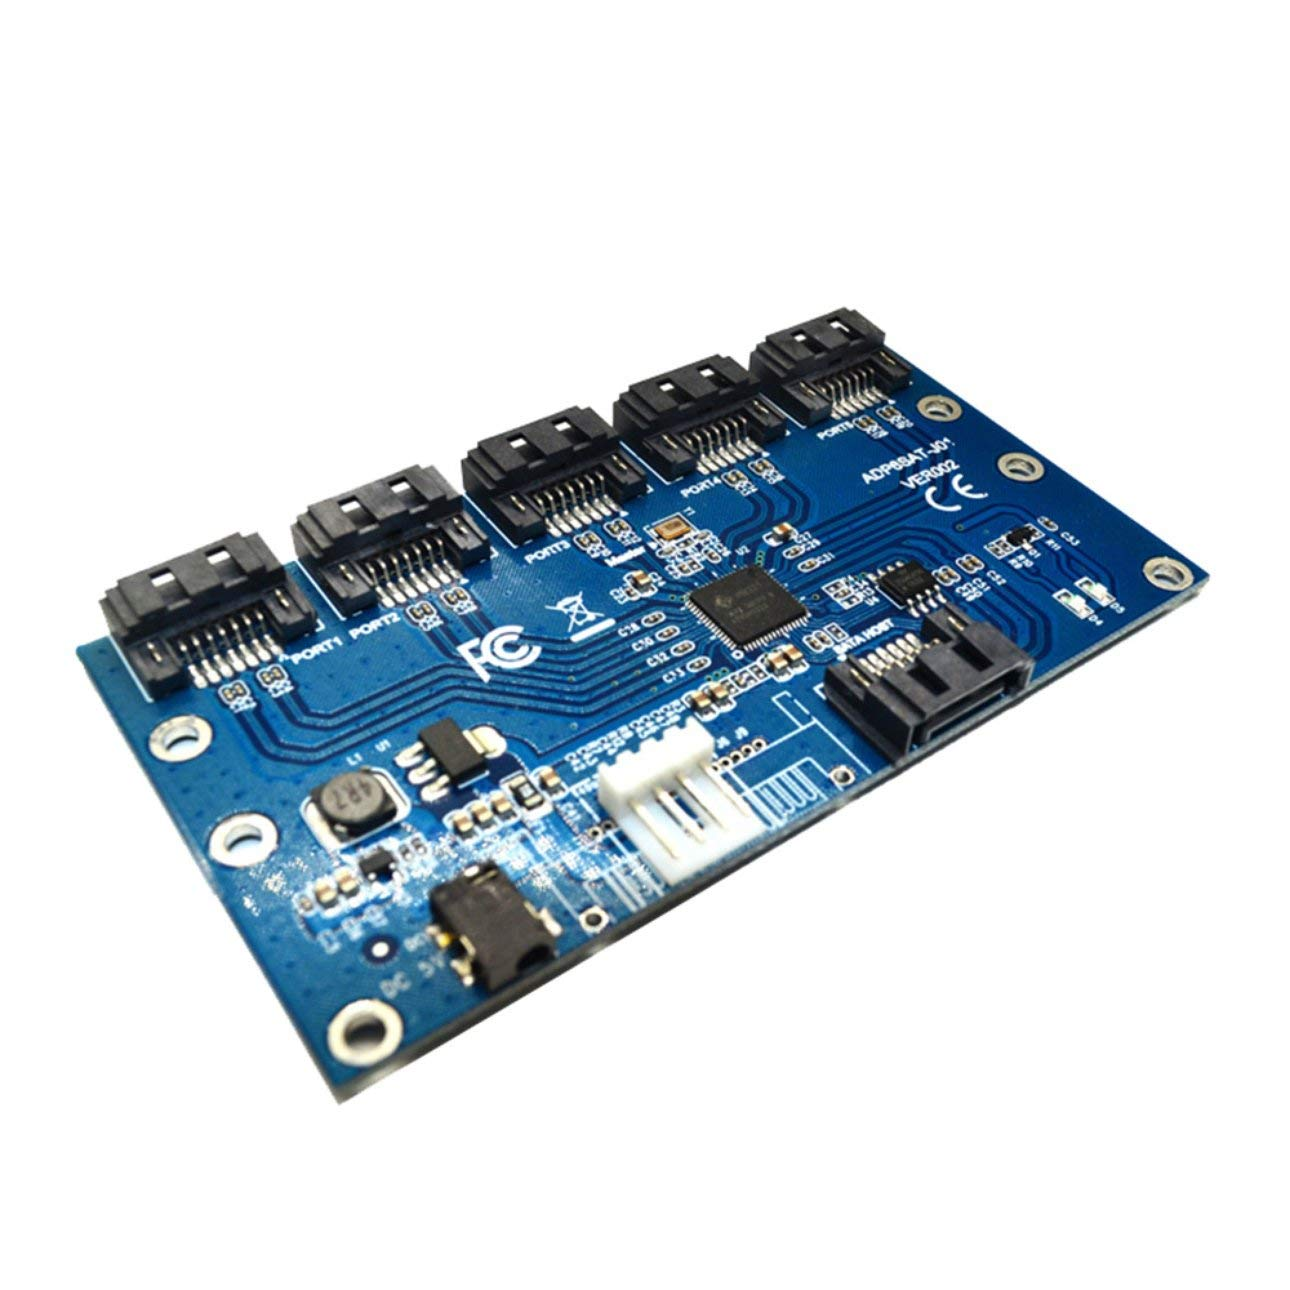 Bwsensing 3D Digital Compass Electric Compass Bare Board HEC360 with Heading Accuracy 0.3-0.5 Degree and RS232,RS485,TTL,Modbus Output for Optional